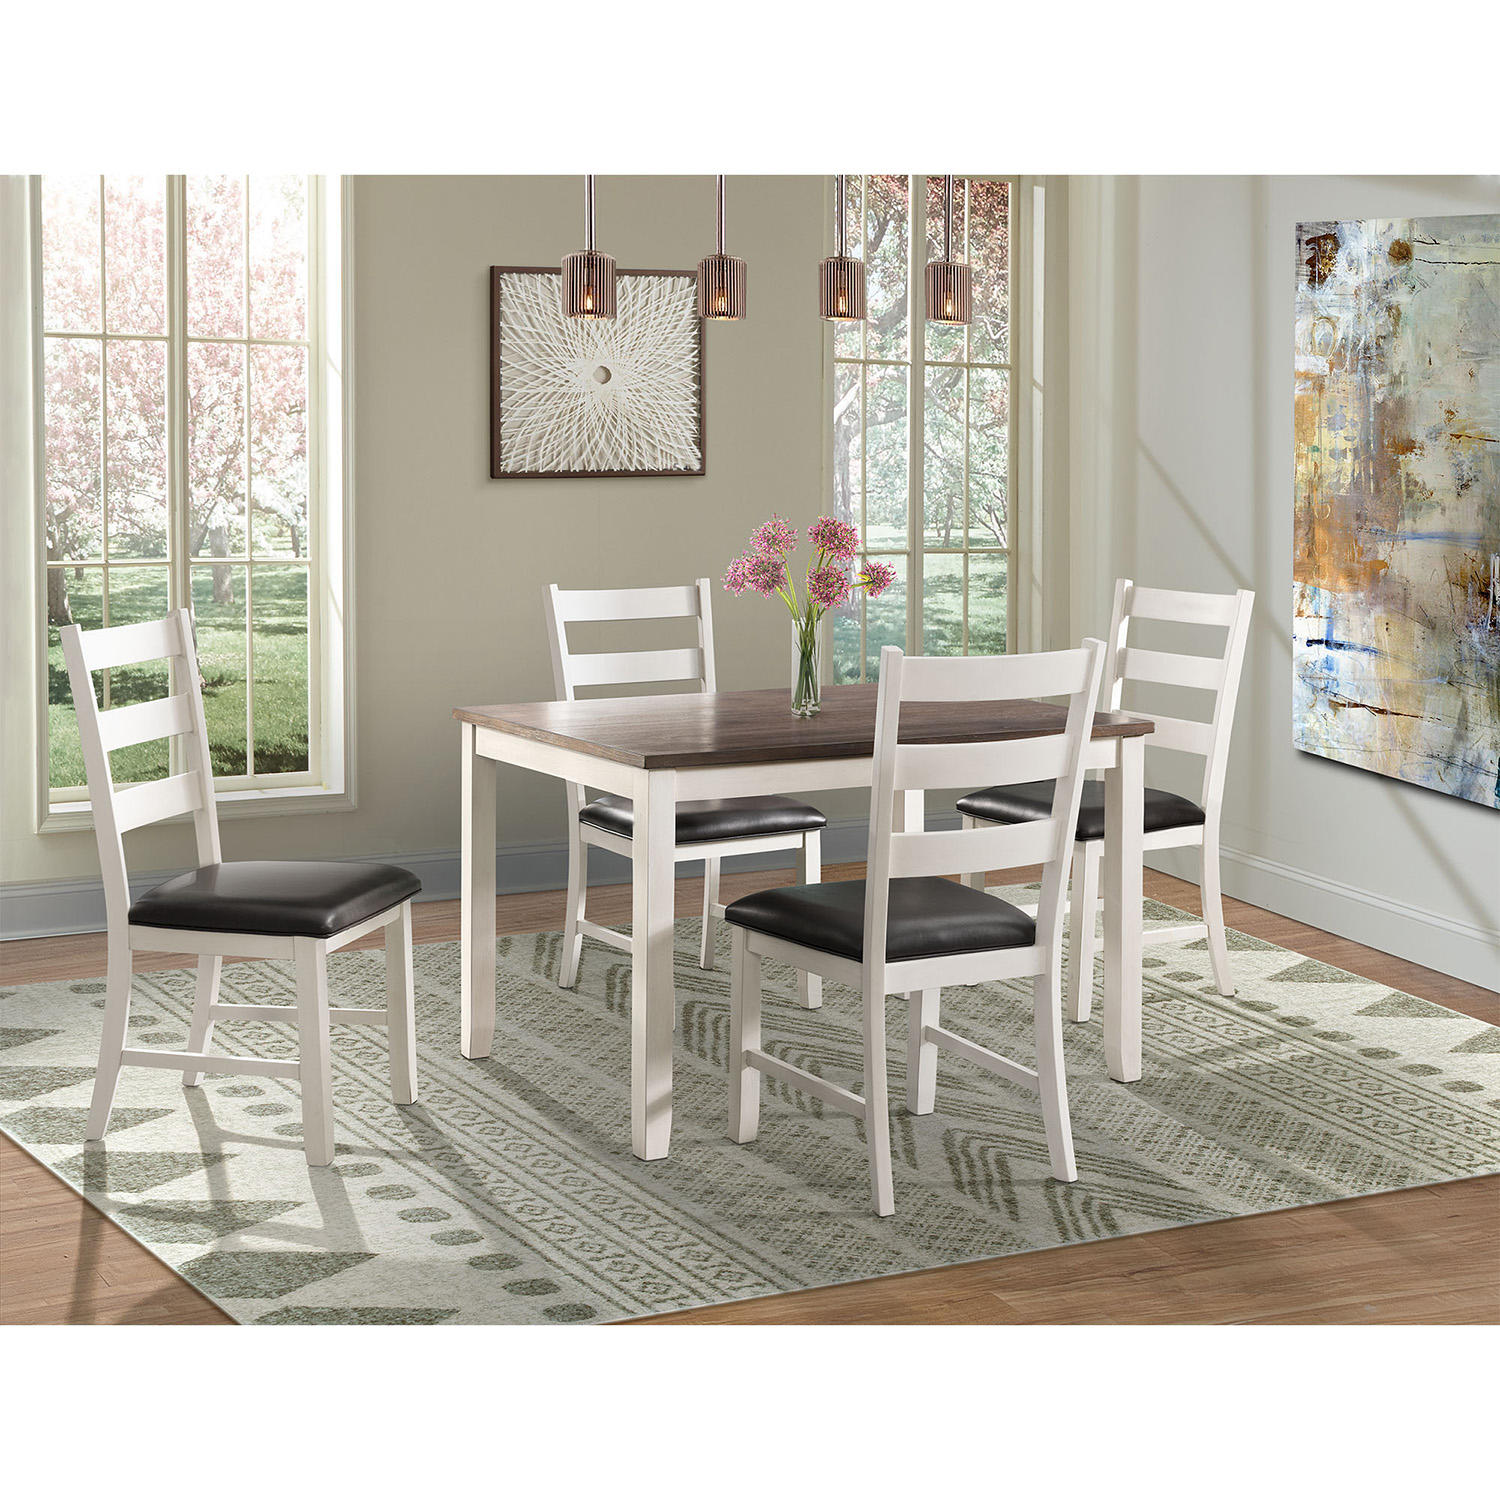 Society Den Kona 5-Piece Dining Set (Multiple Options)